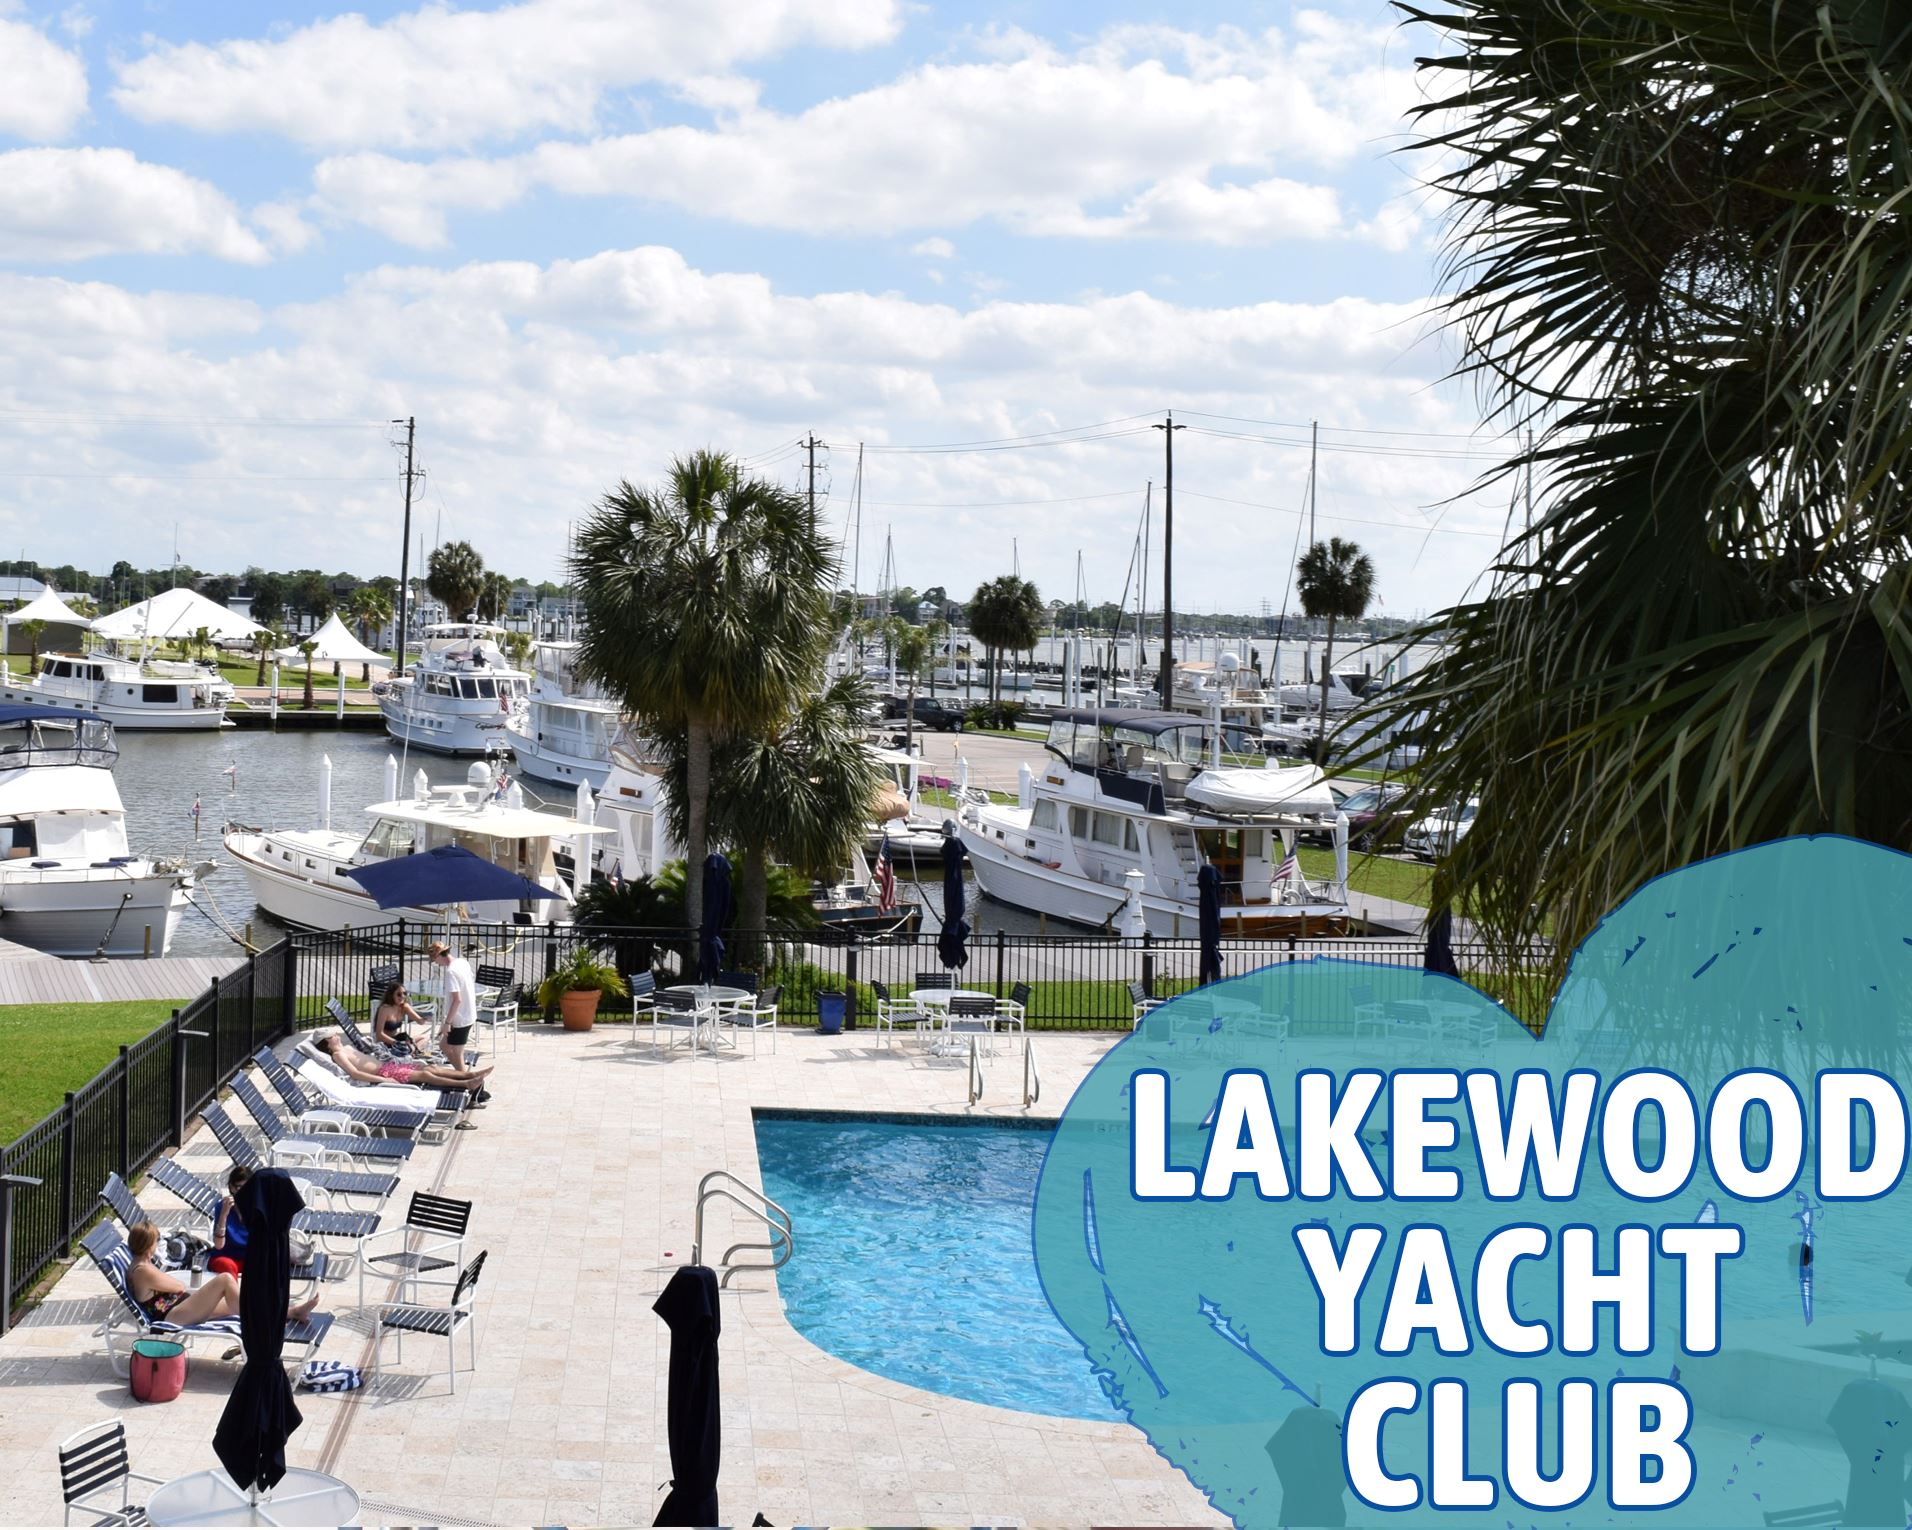 Lakewood Yacht Club Opens in new window